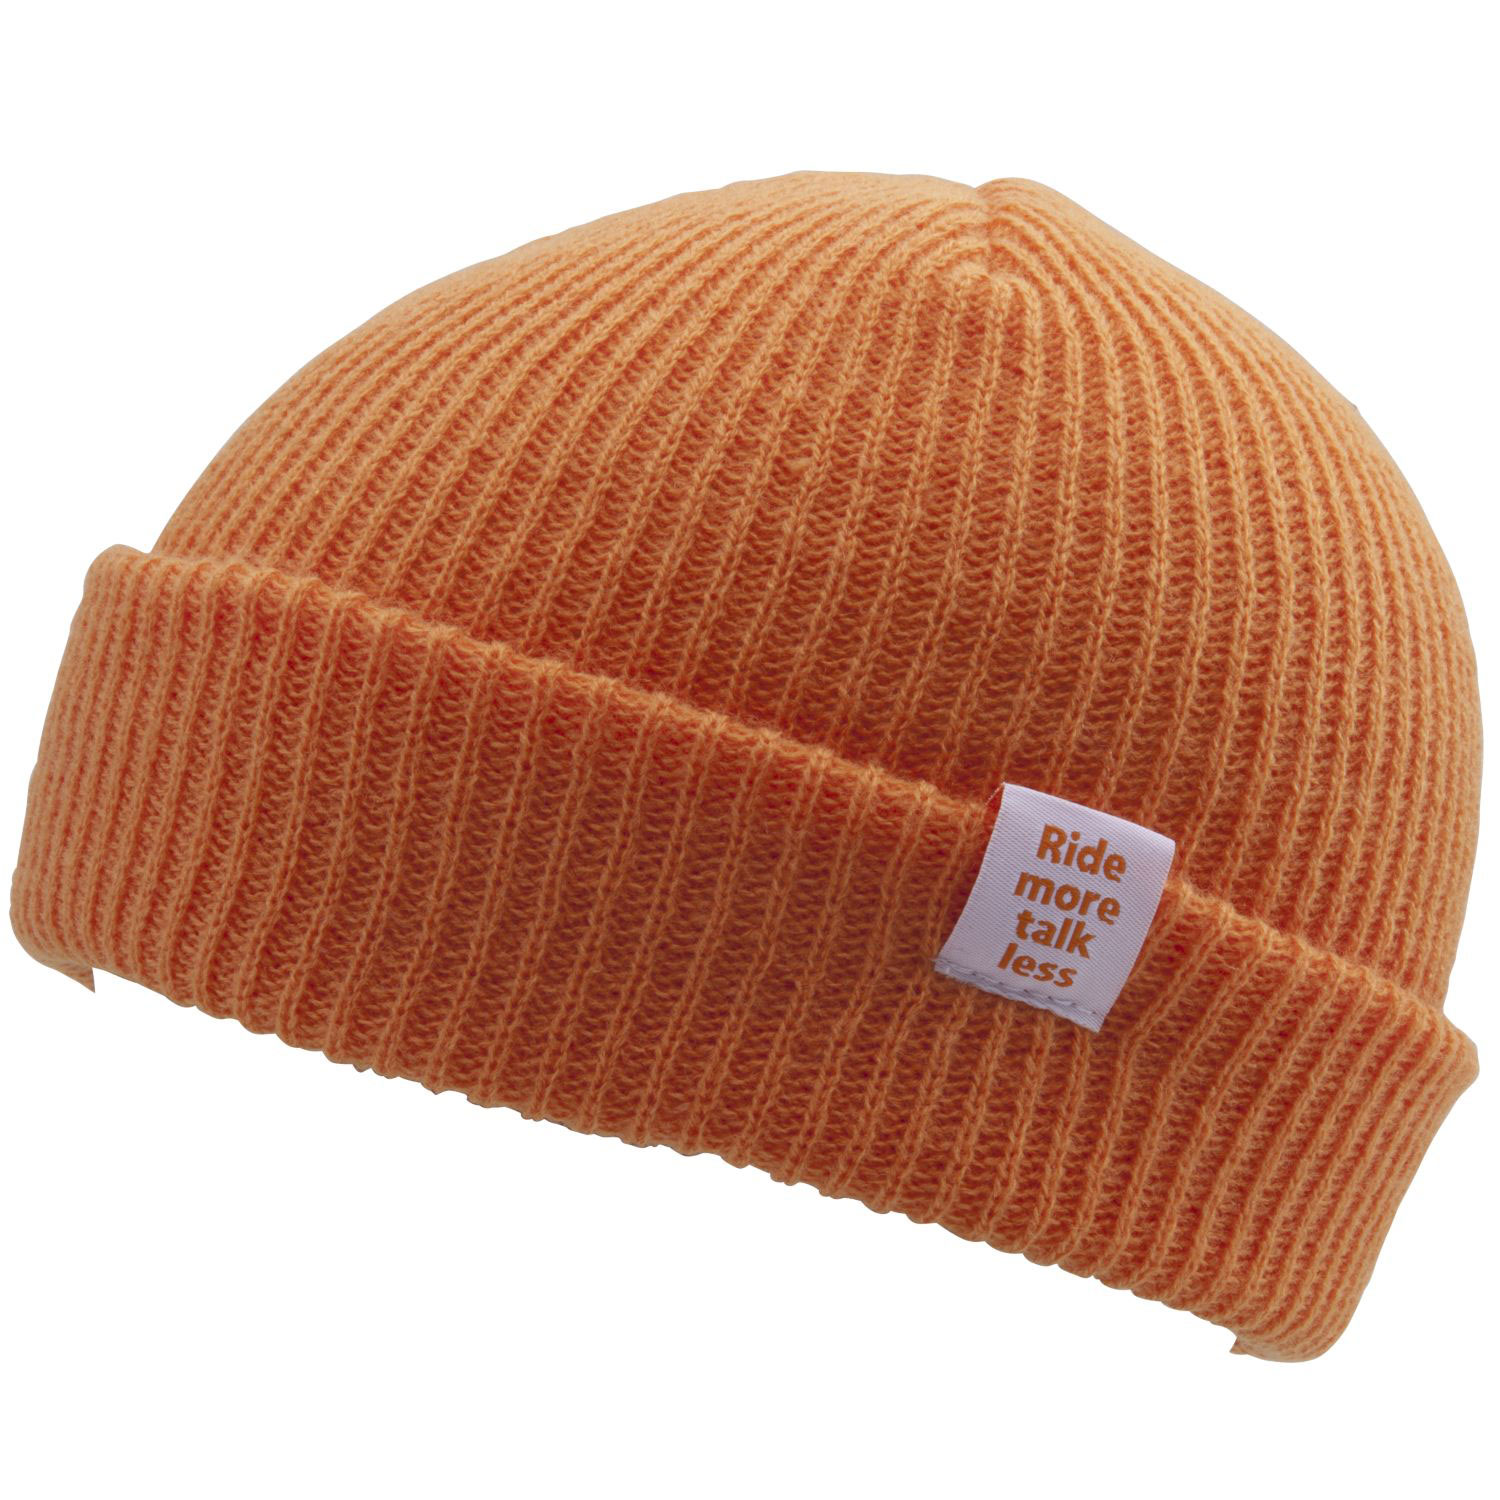 Ride Gas Station Beanie - $11.95